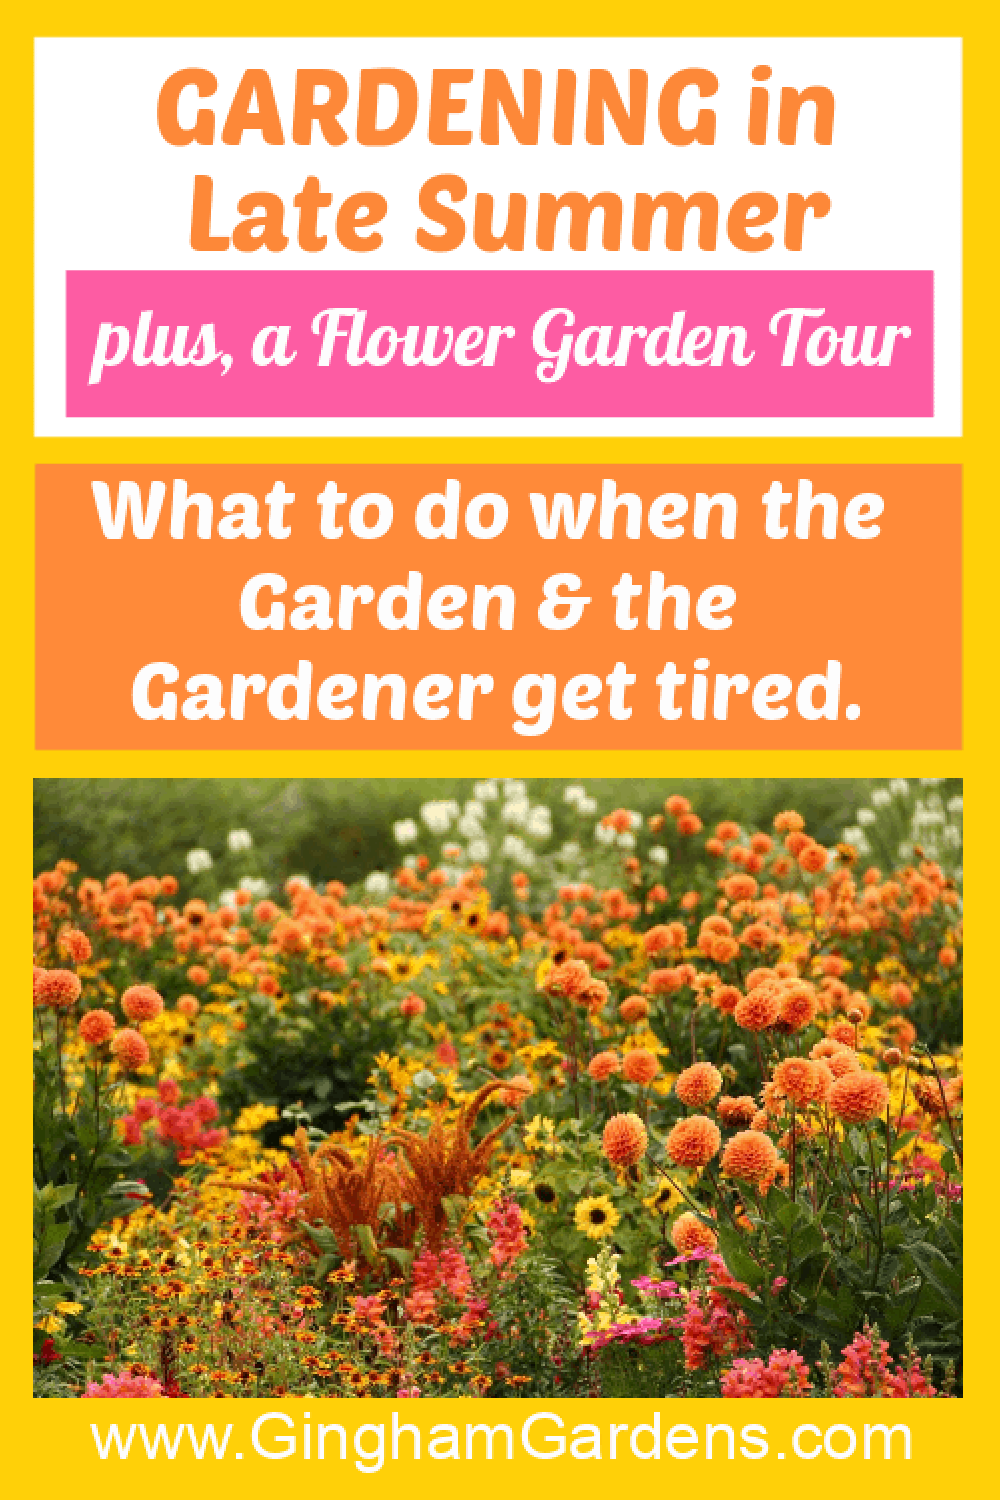 Image of a Flower Garden with Text Overlay - Gardening in Late Summer